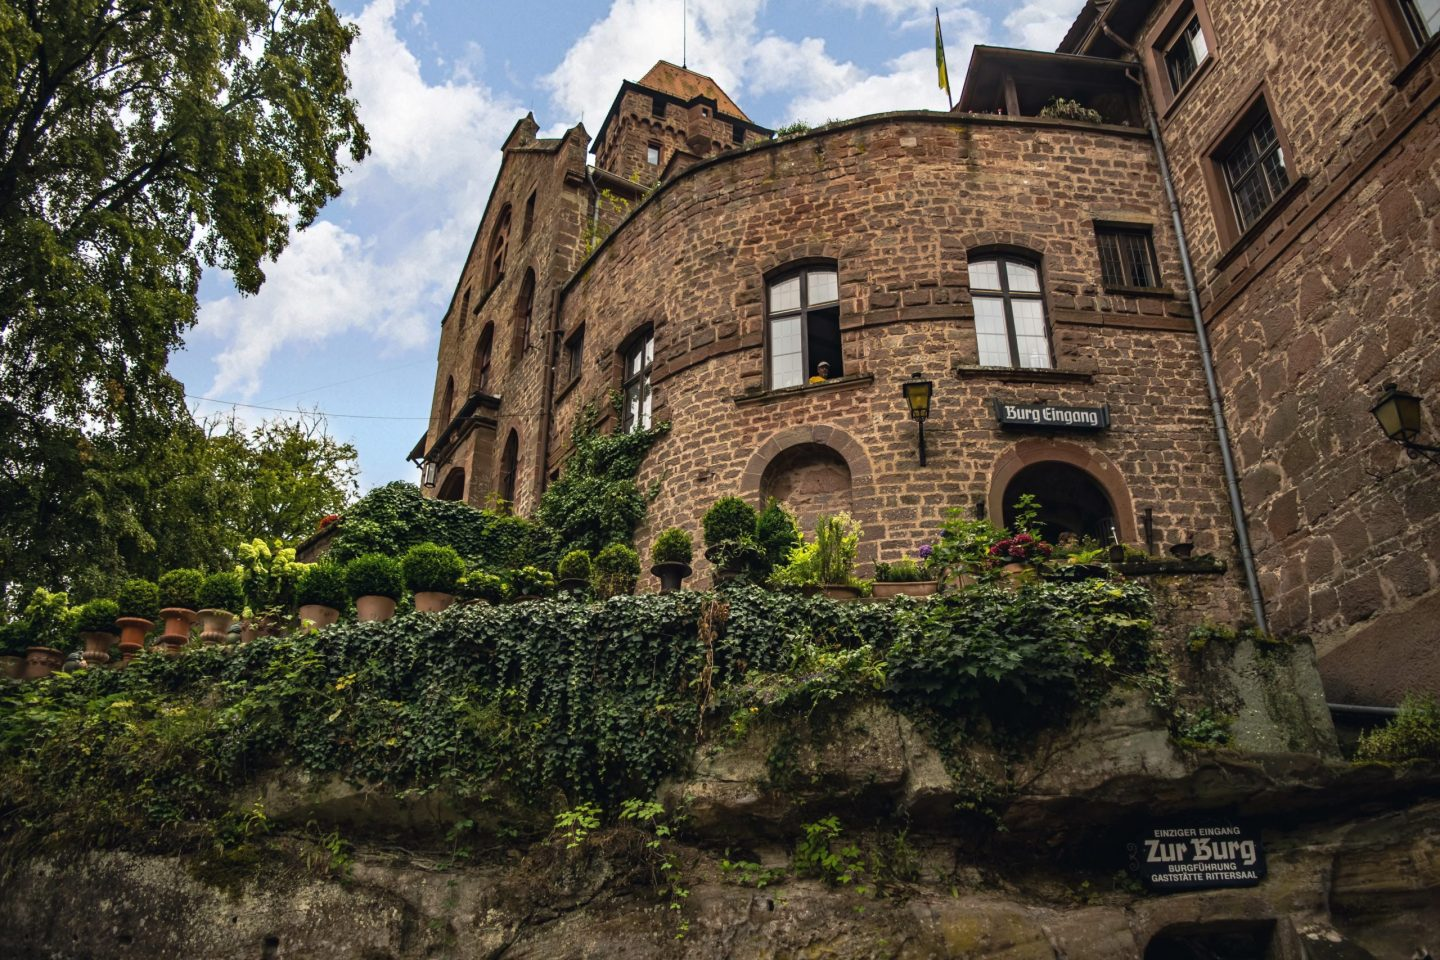 Visiting the haunted castle of Burg Berwartstein